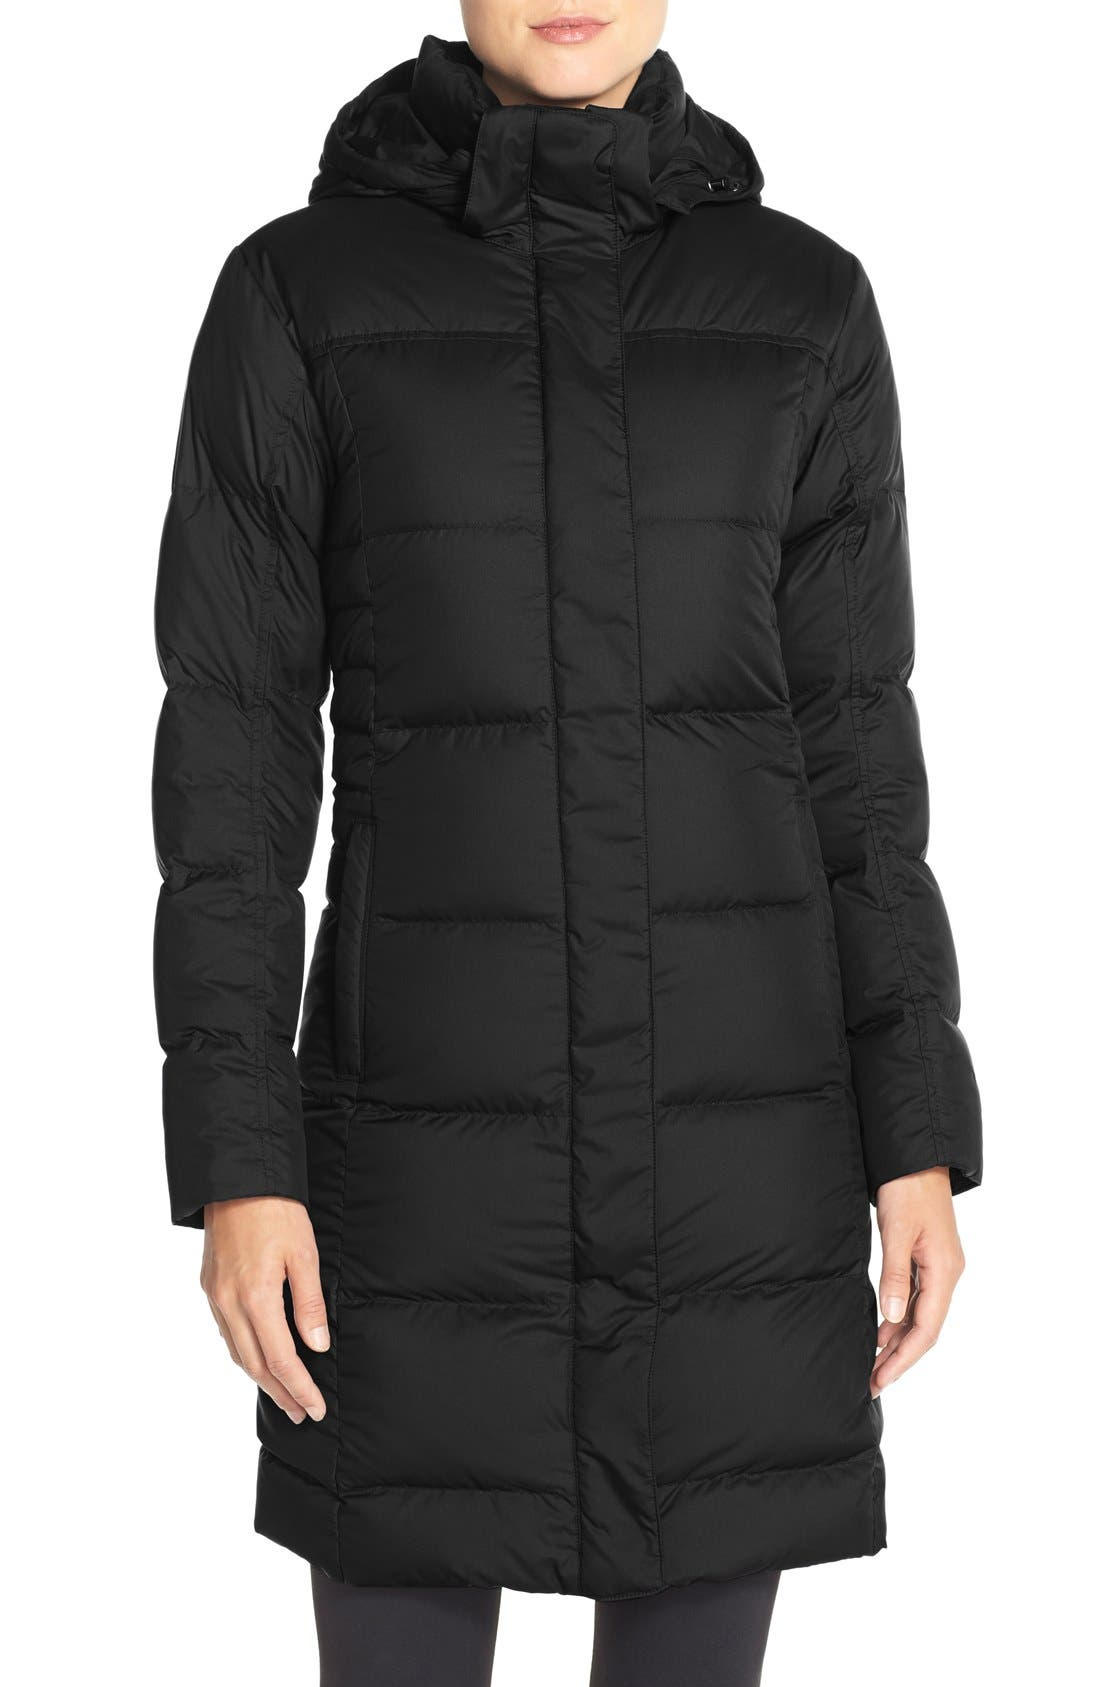 Main Image - Patagonia 'Down with It' Water RepellentParka